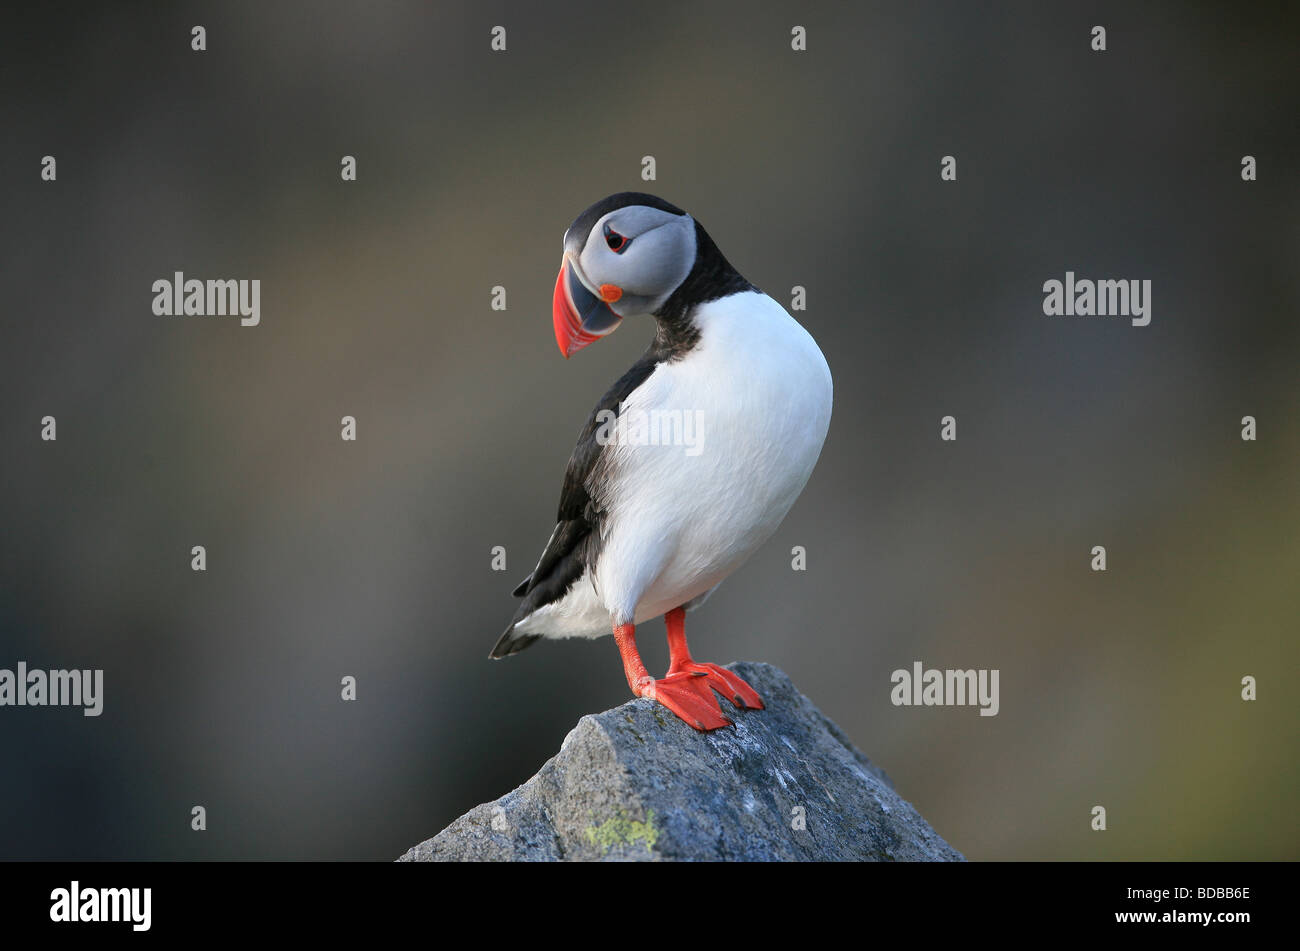 Atlantic Puffin, Fratercula arctica, at the island Runde on the Atlantic west coast, Møre og Romsdal, Norway. Stock Photo